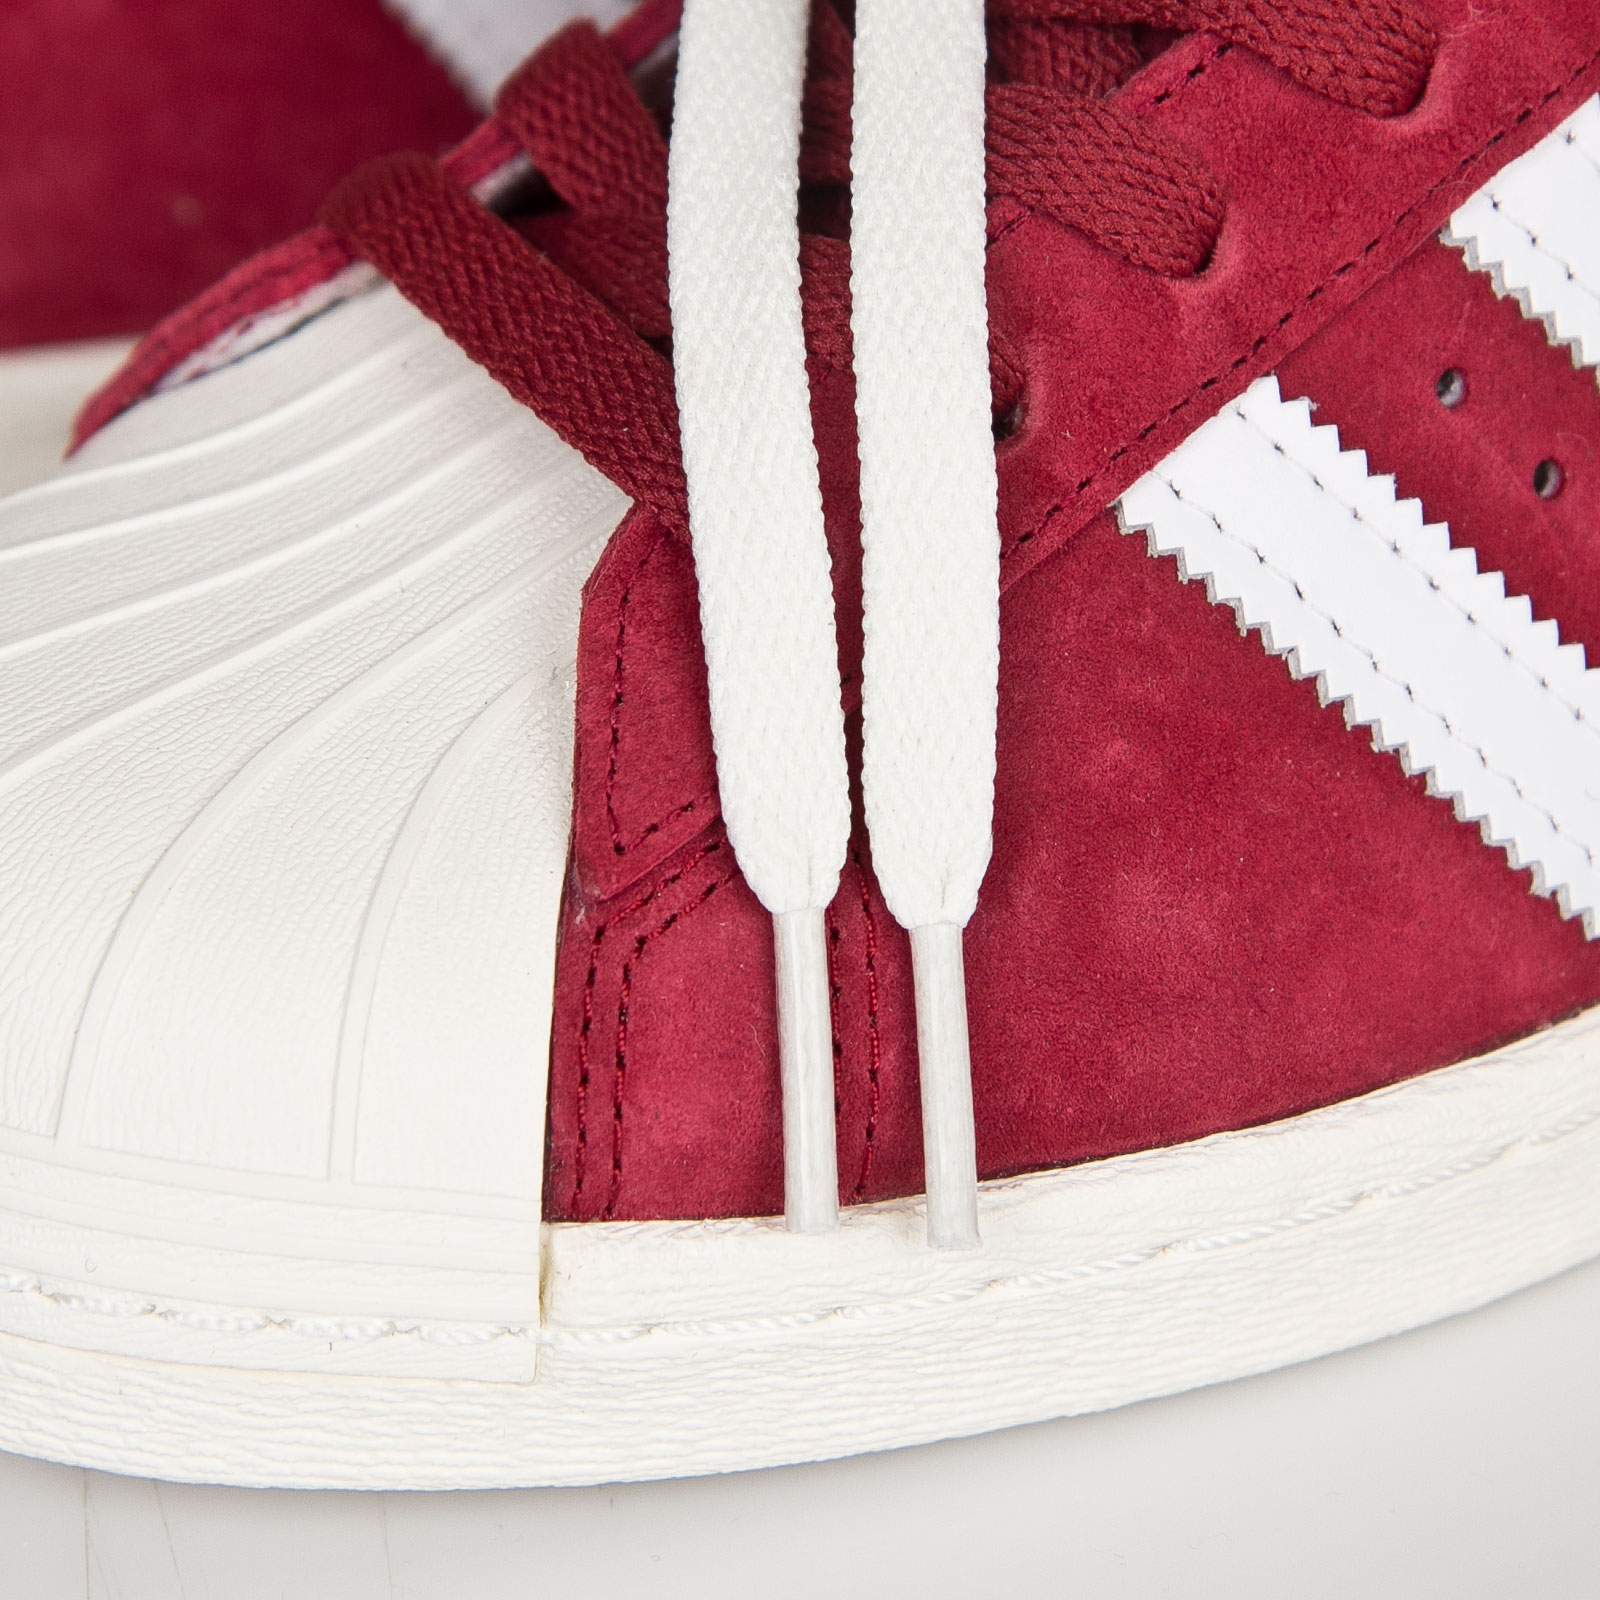 the latest ea7a0 046b7 adidas Superstar 80s Deluxe Suede adidas Superstar 80s Deluxe Suede ...